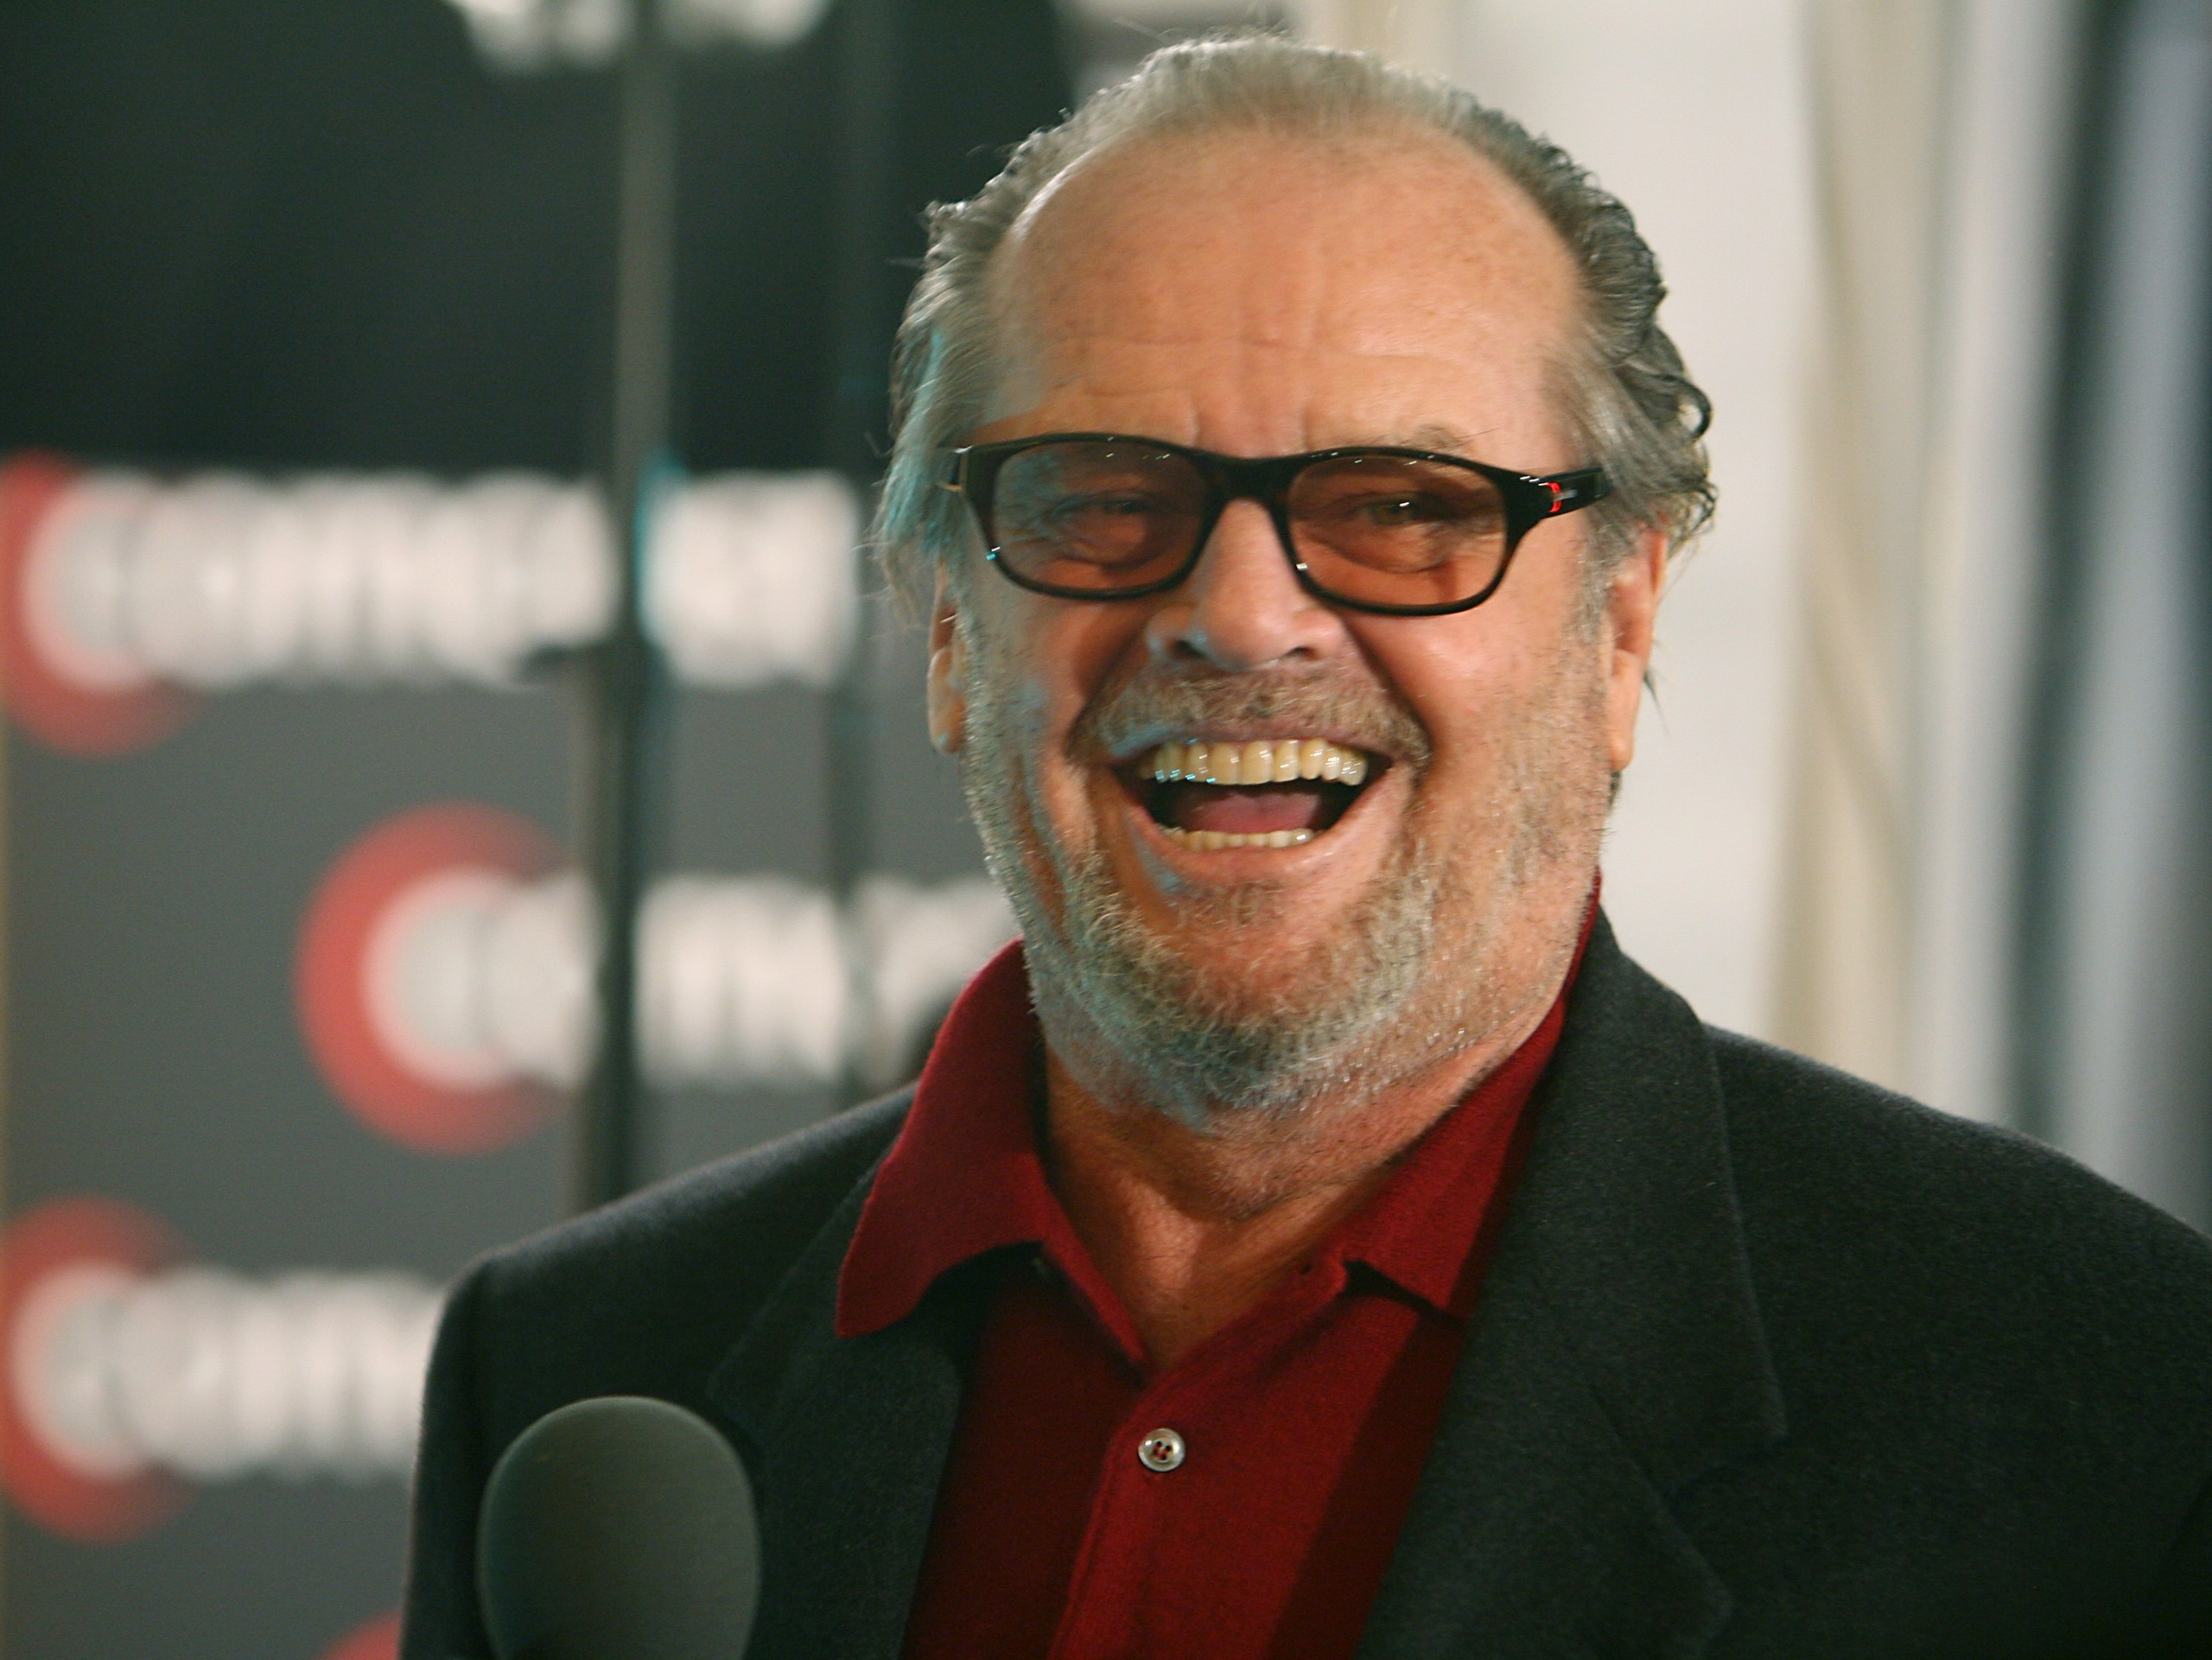 pictures photos of jack nicholson imdb pictures of jack nicholson